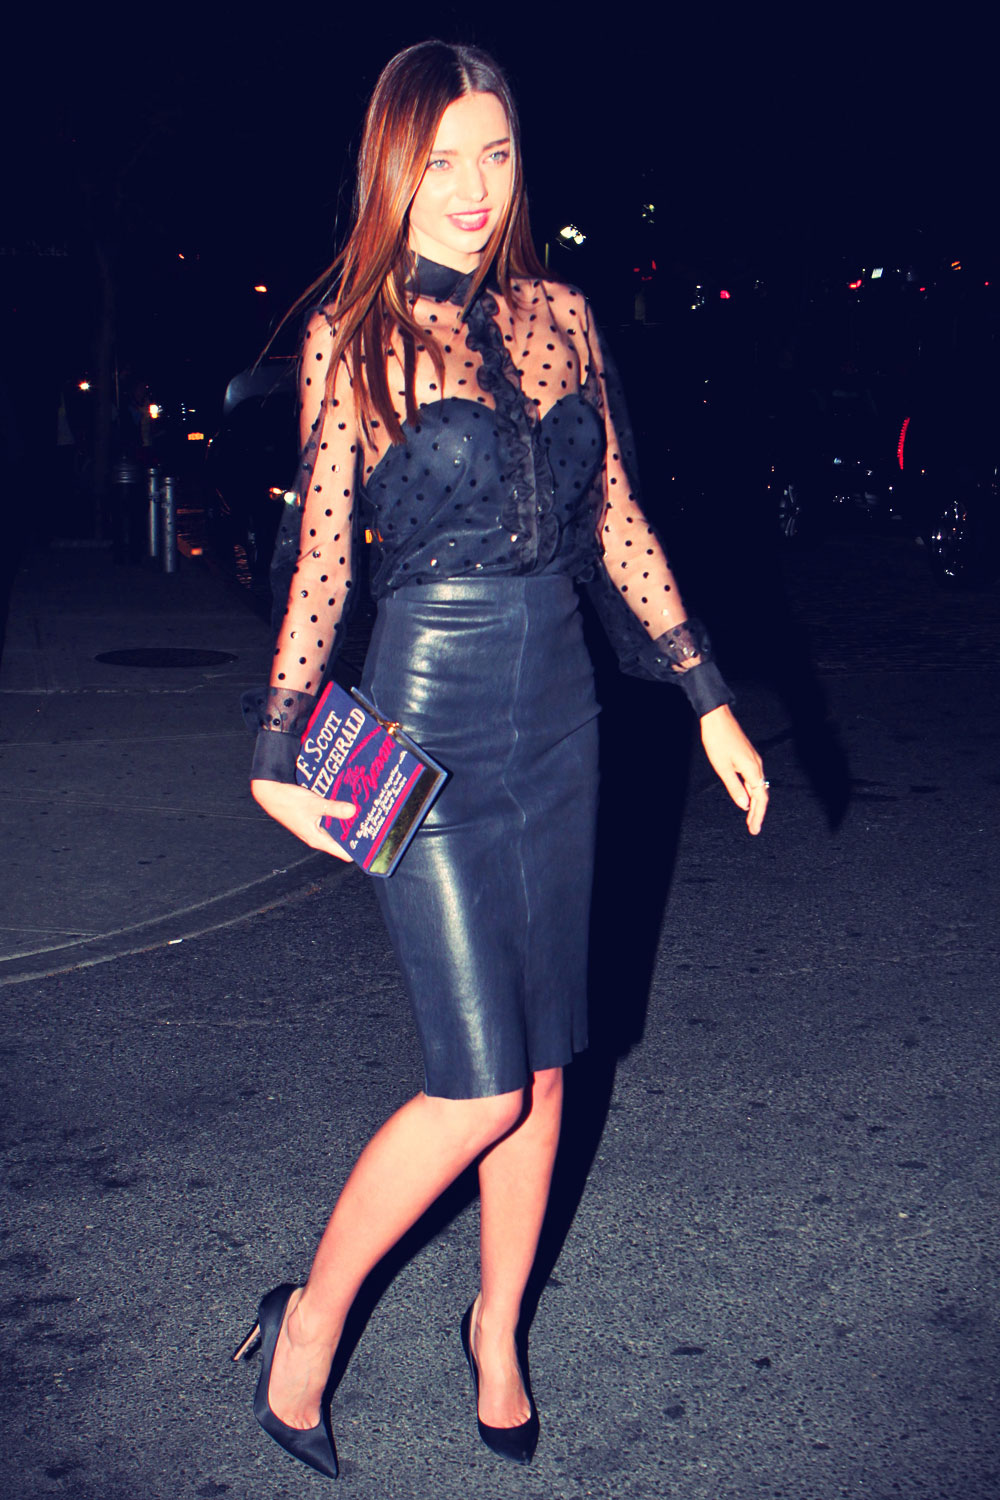 Miranda Kerr goes for an evening out in New York